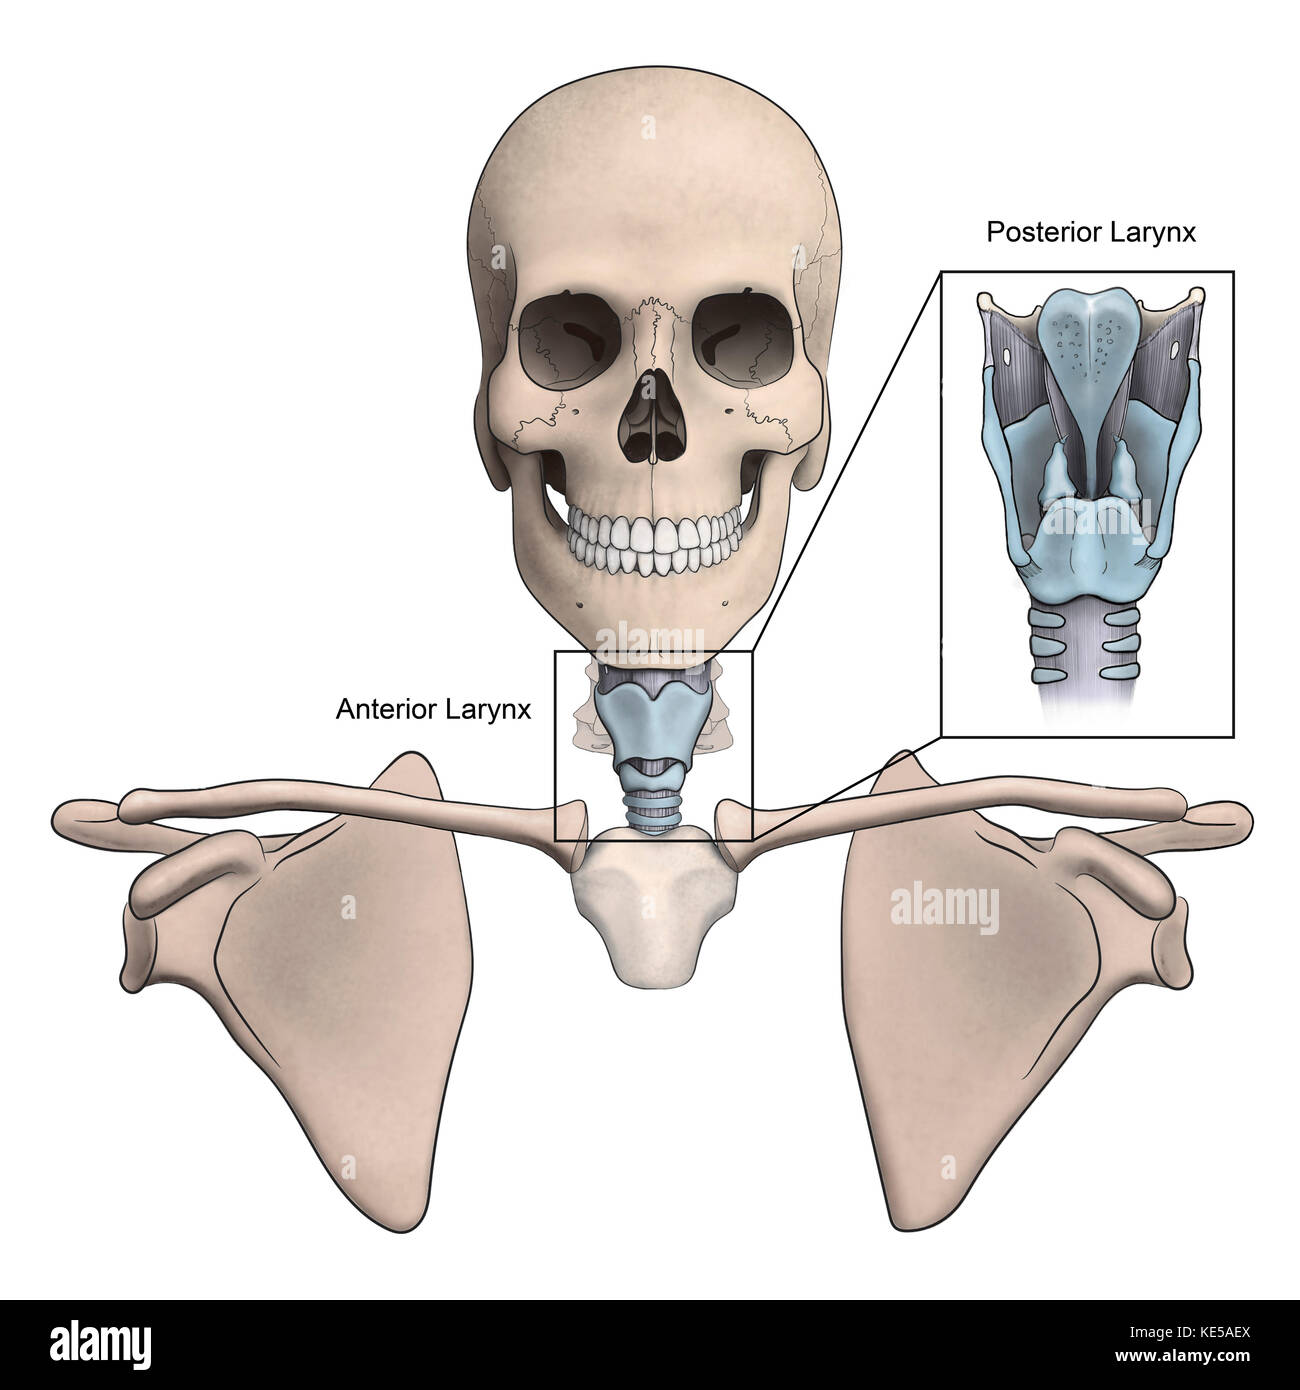 Ethmoid Bone Stockfotos & Ethmoid Bone Bilder - Alamy